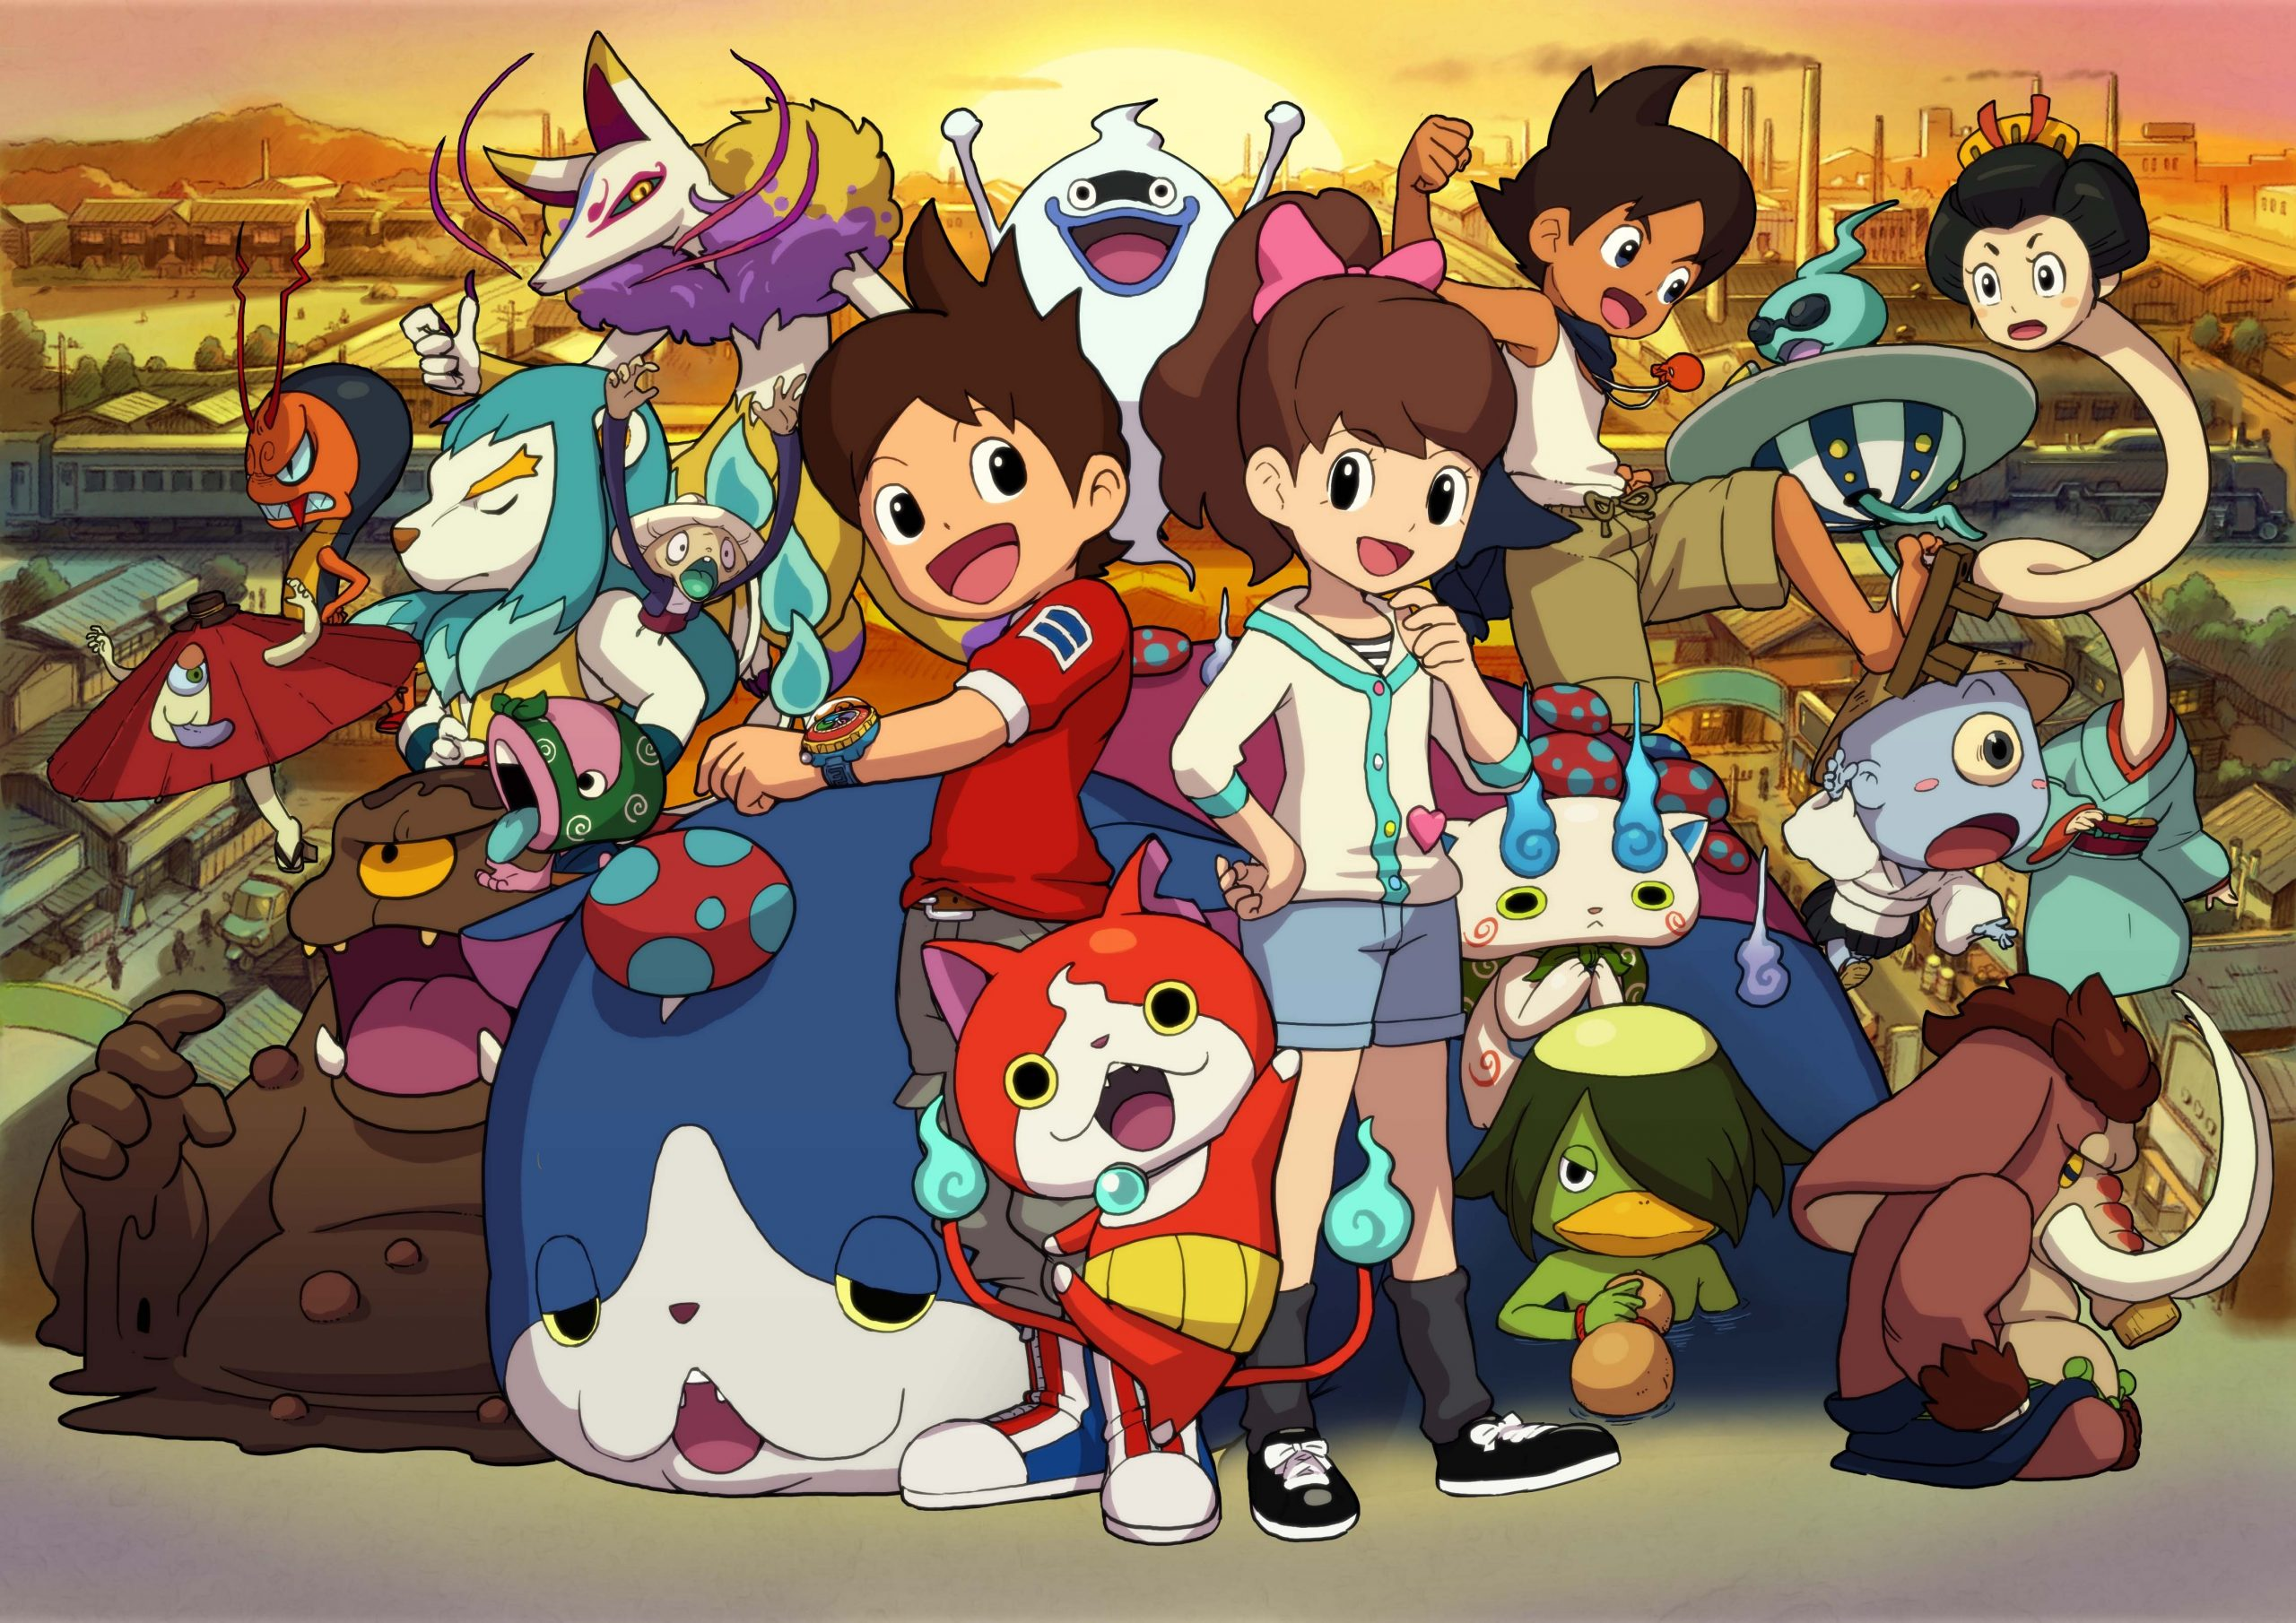 Yo Kai Watch 2 Review - Worth finding time for?